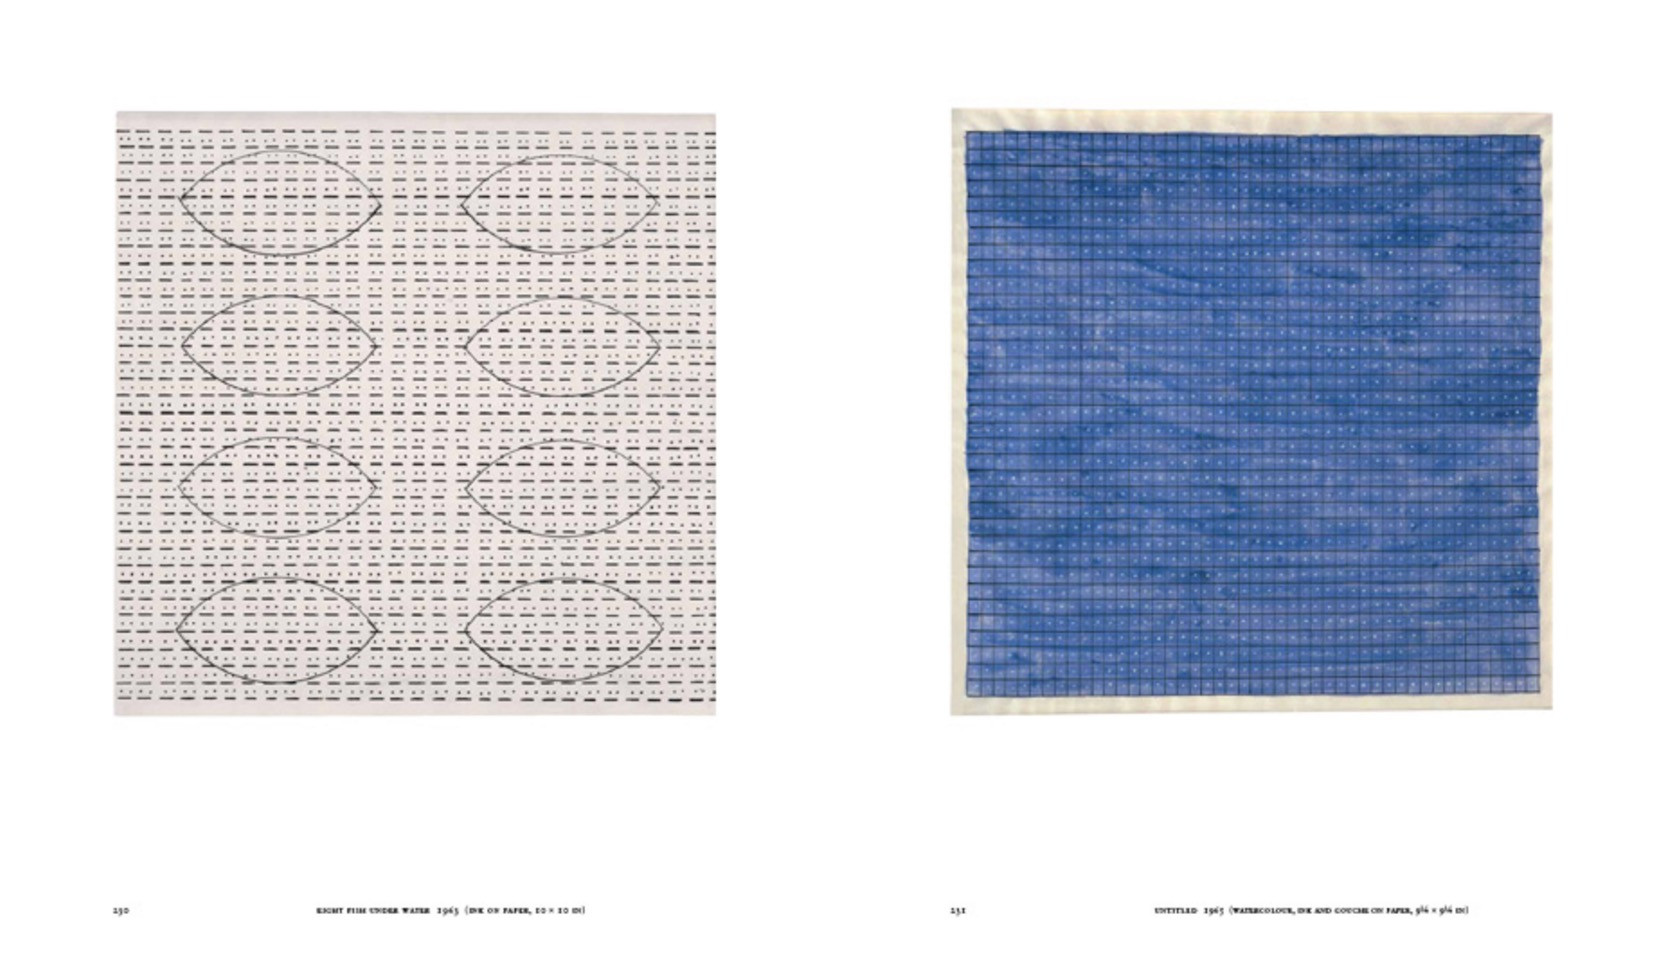 agnes martin writings Agnes martin: paintings, writings, remembrances is the first and only complete career retrospective publication of the visionary painter this important and beautiful book brings together 130 of martin's paintings and drawings.